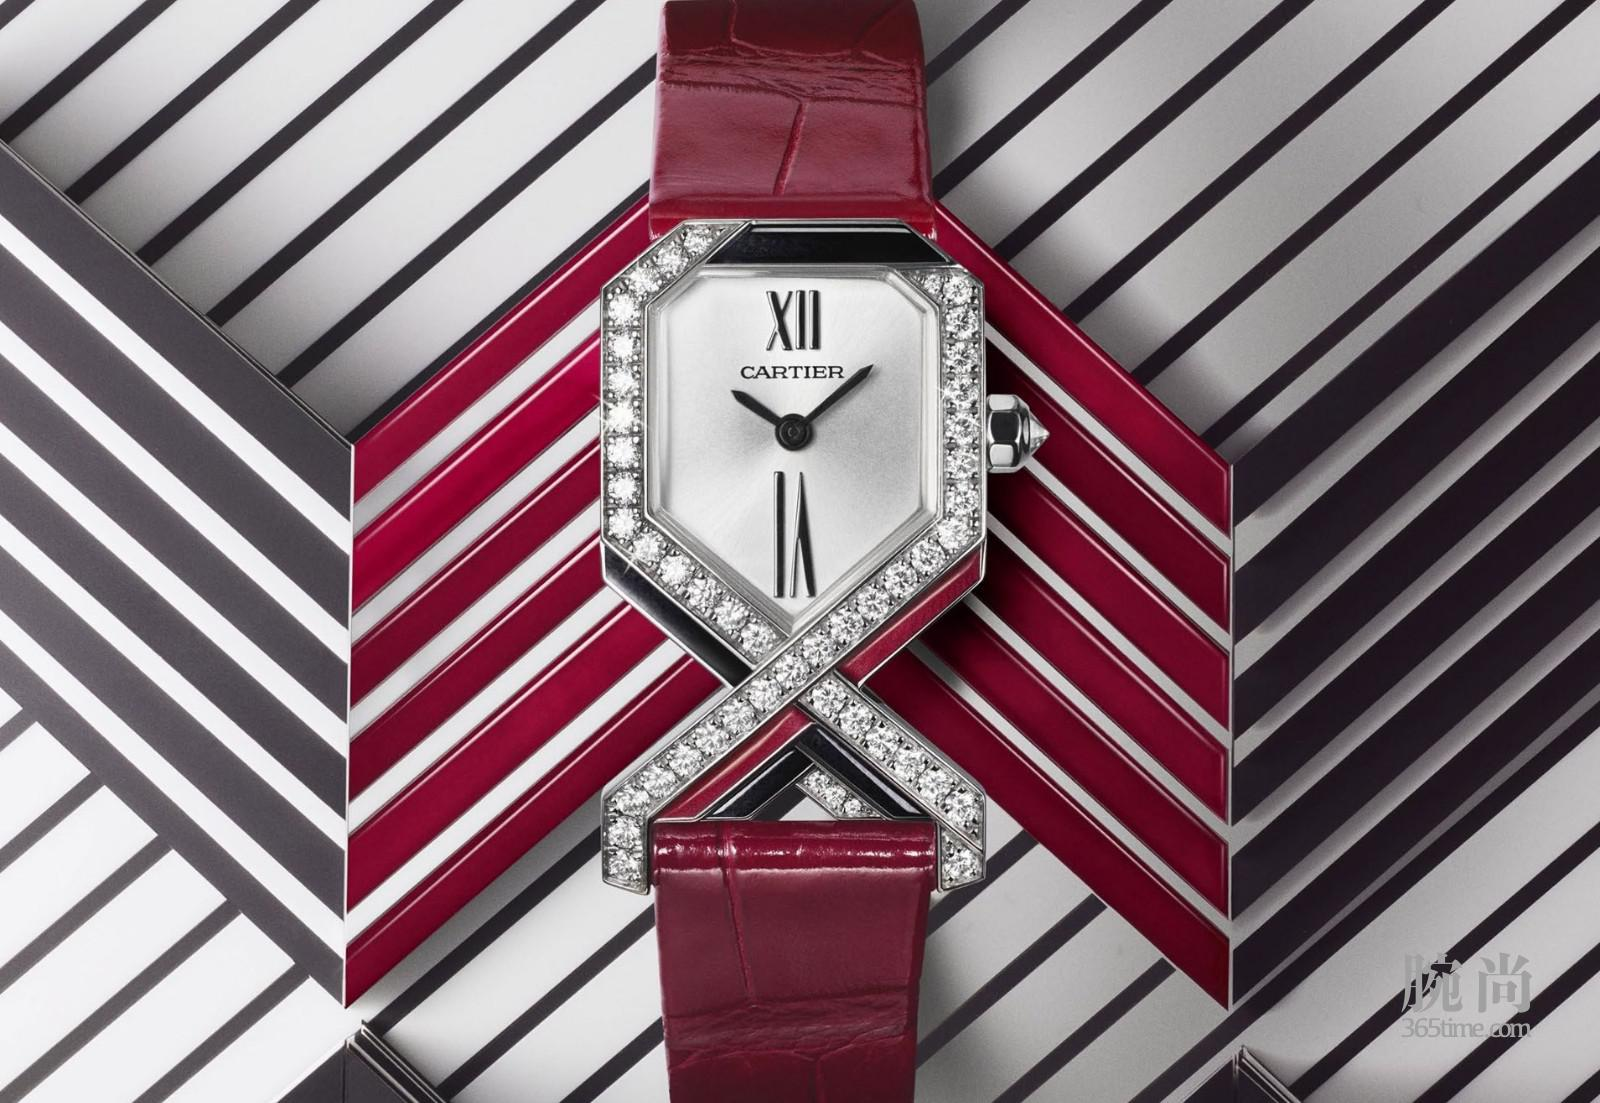 SIHH-2019-Cartier-Libre-Jewelry-collection-4.jpg